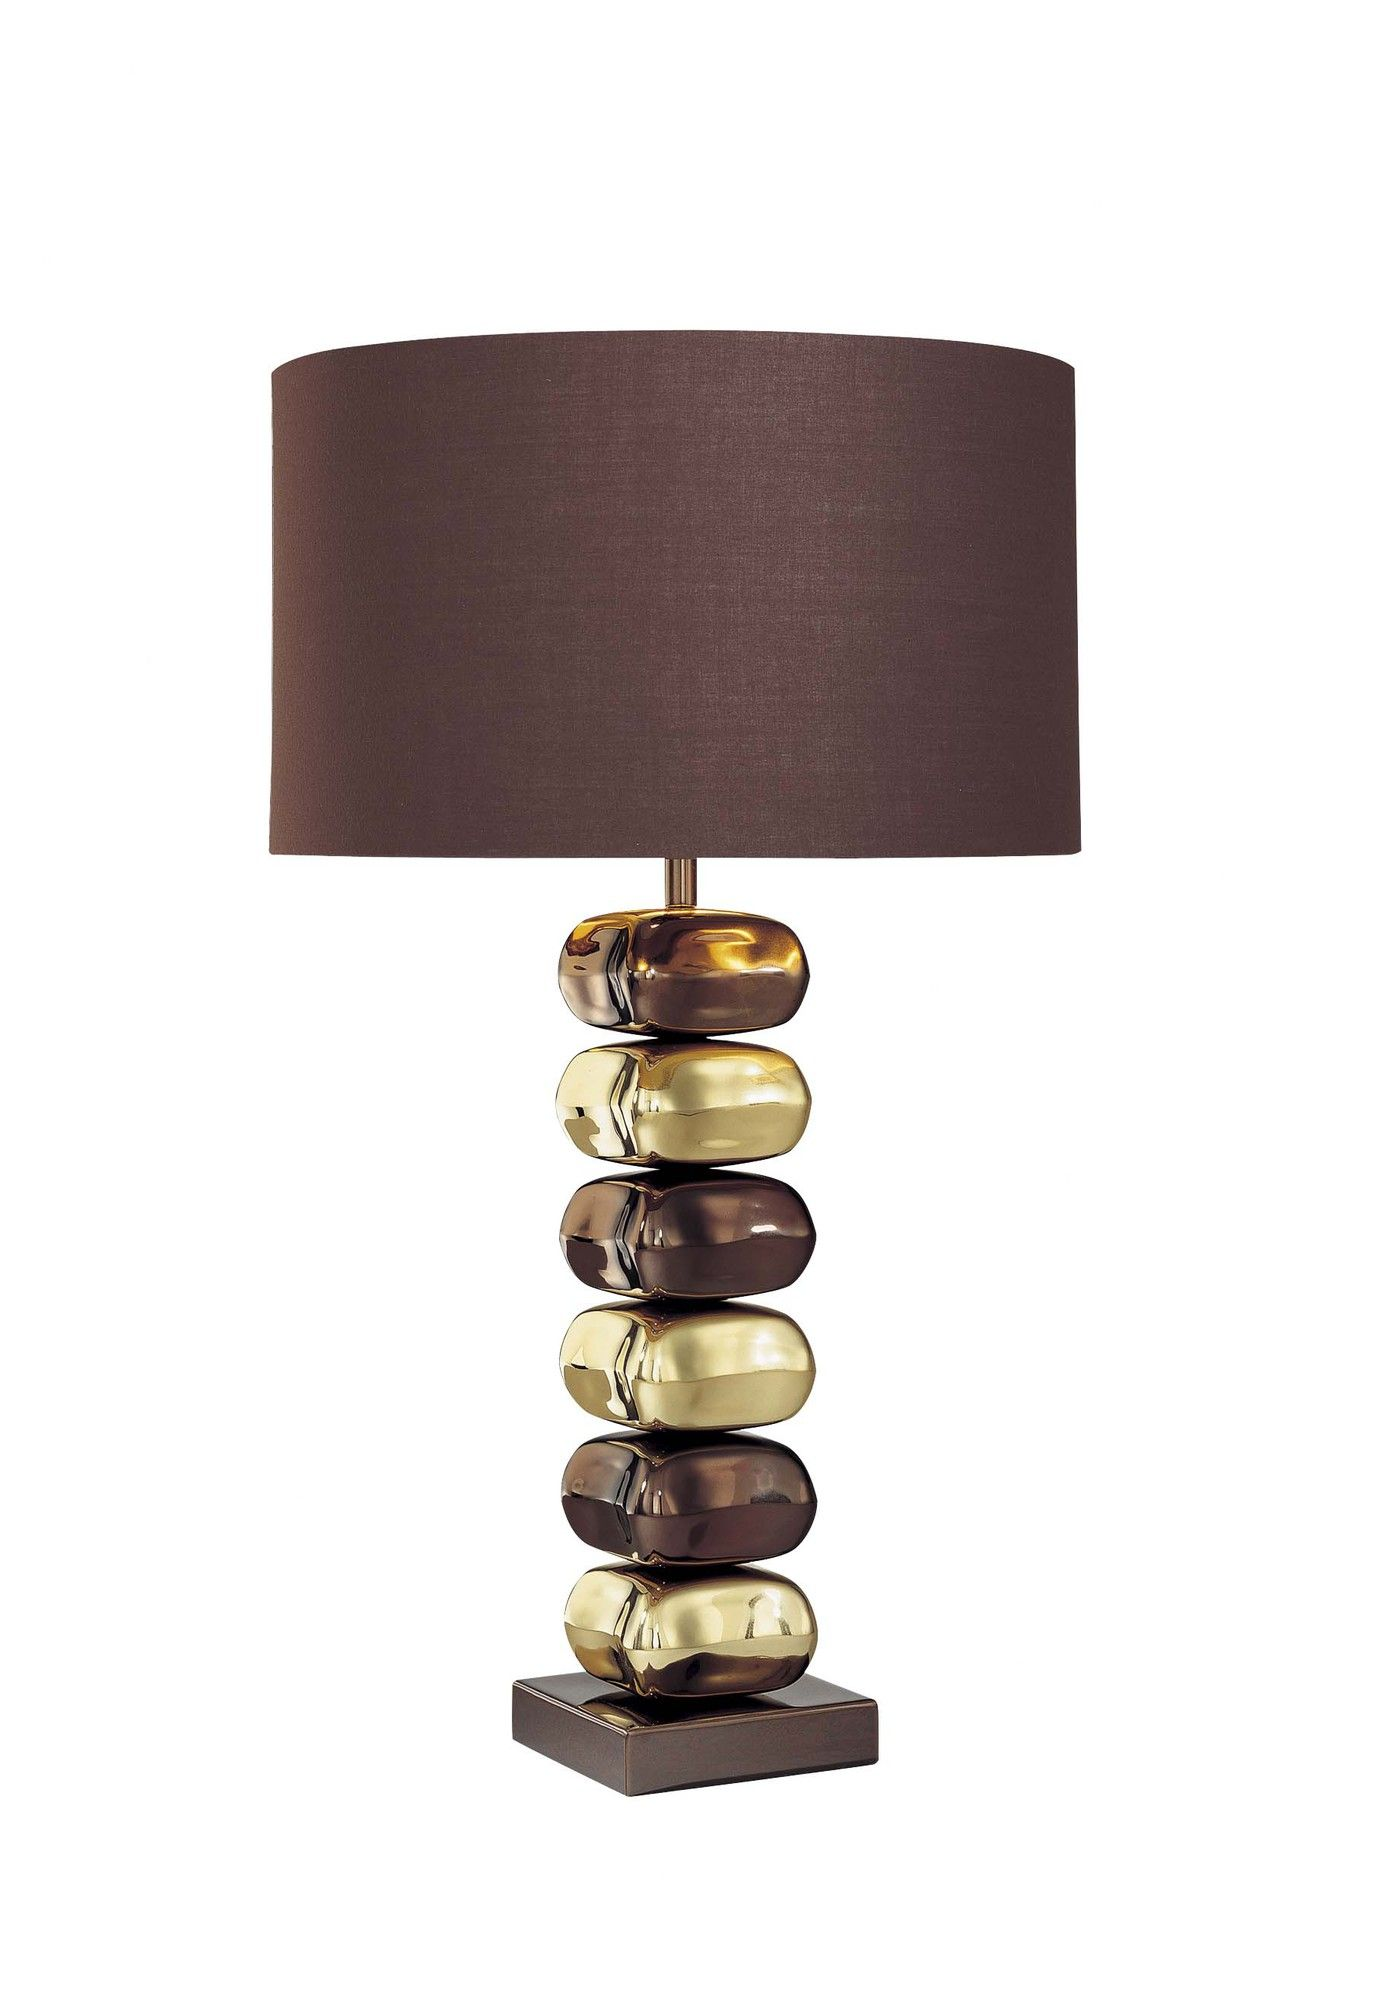 George Kovacs 25 5 H Table Lamp With Drum Shade Lamp Brass Table Lamps Table Lamp